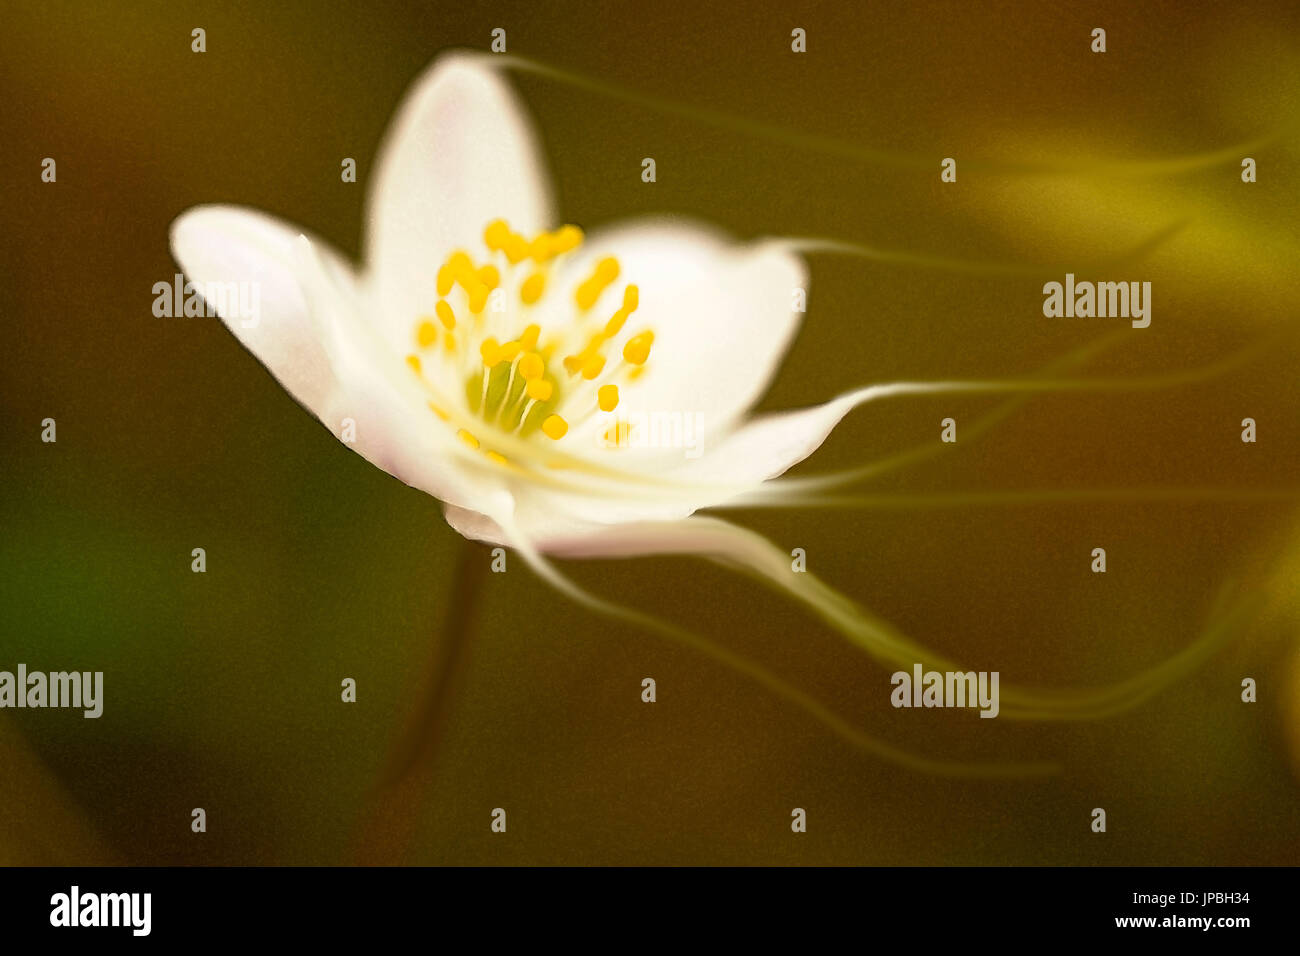 Wood Anemone in a dark forest, digital painting effect - Stock Image